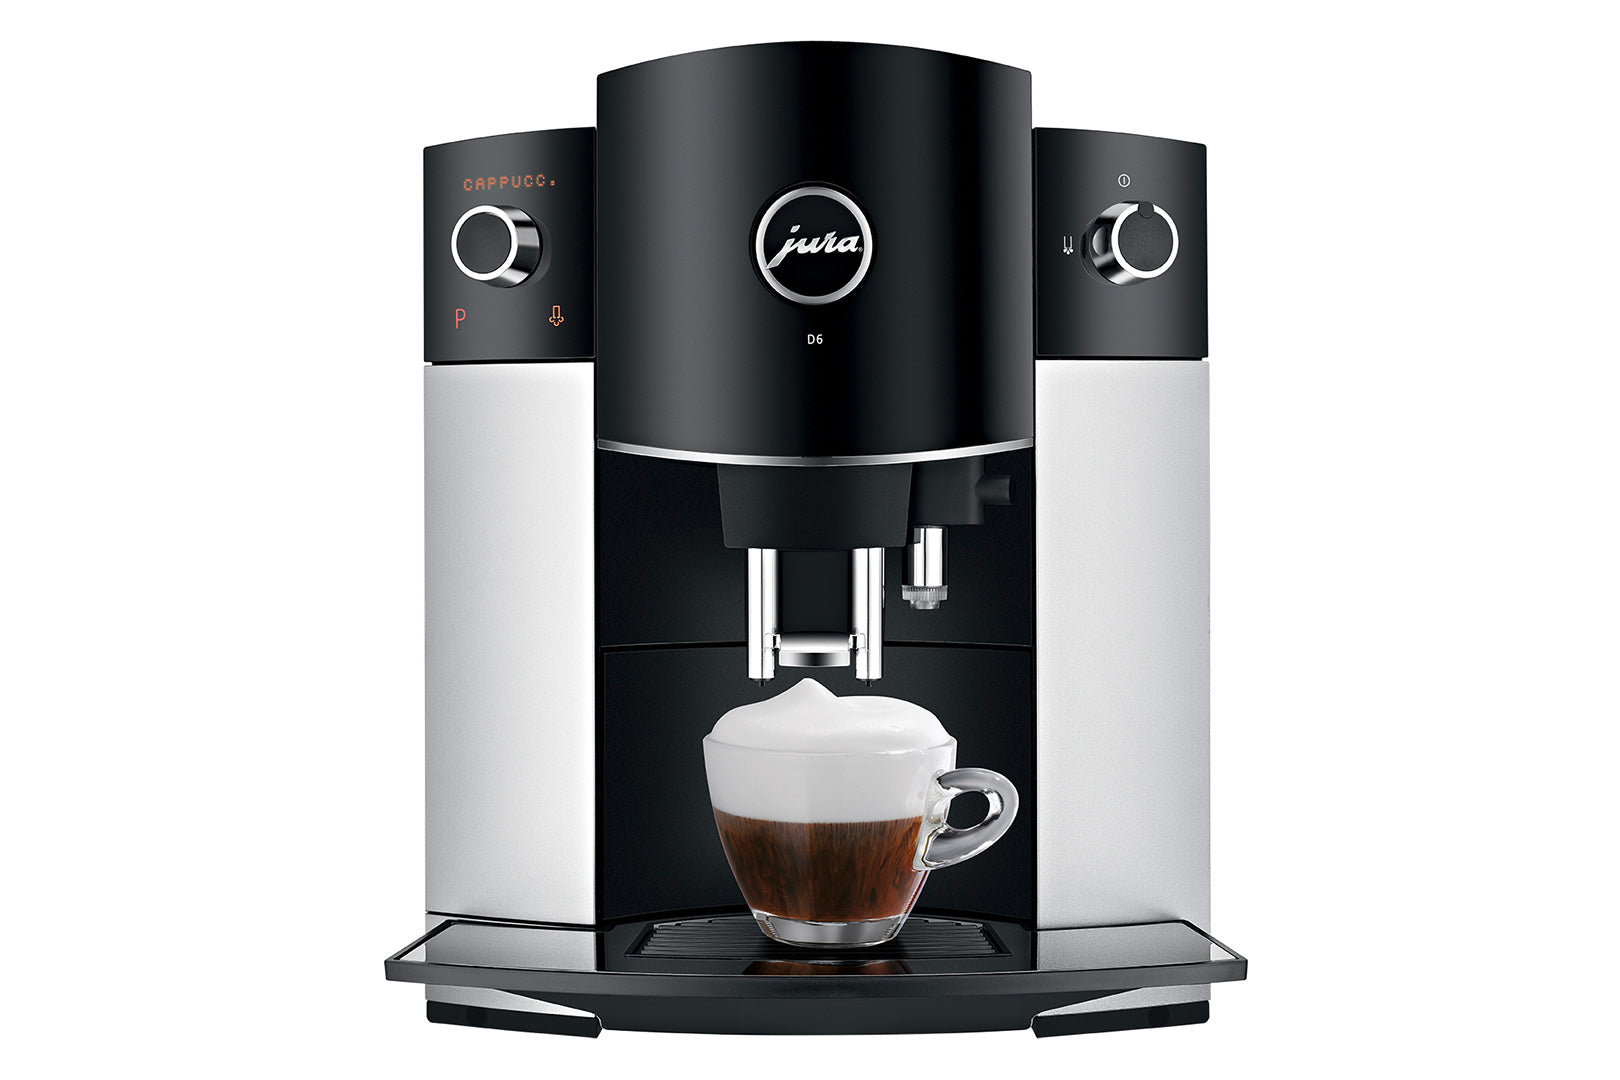 Jura D6 Automatic Coffee Machine 15216 - Platinum